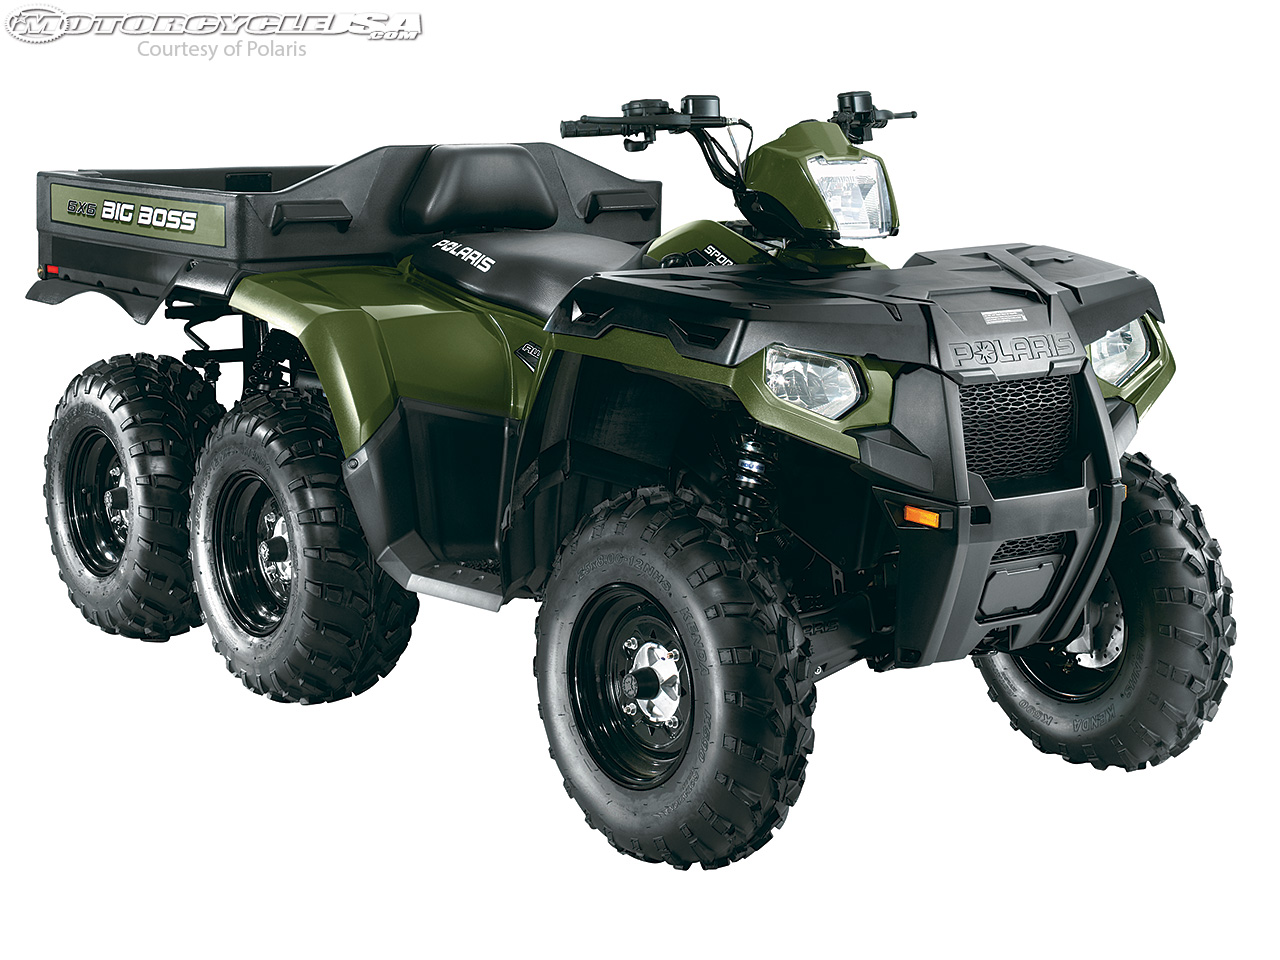 Polaris Sportsman 90 2006 images #175584